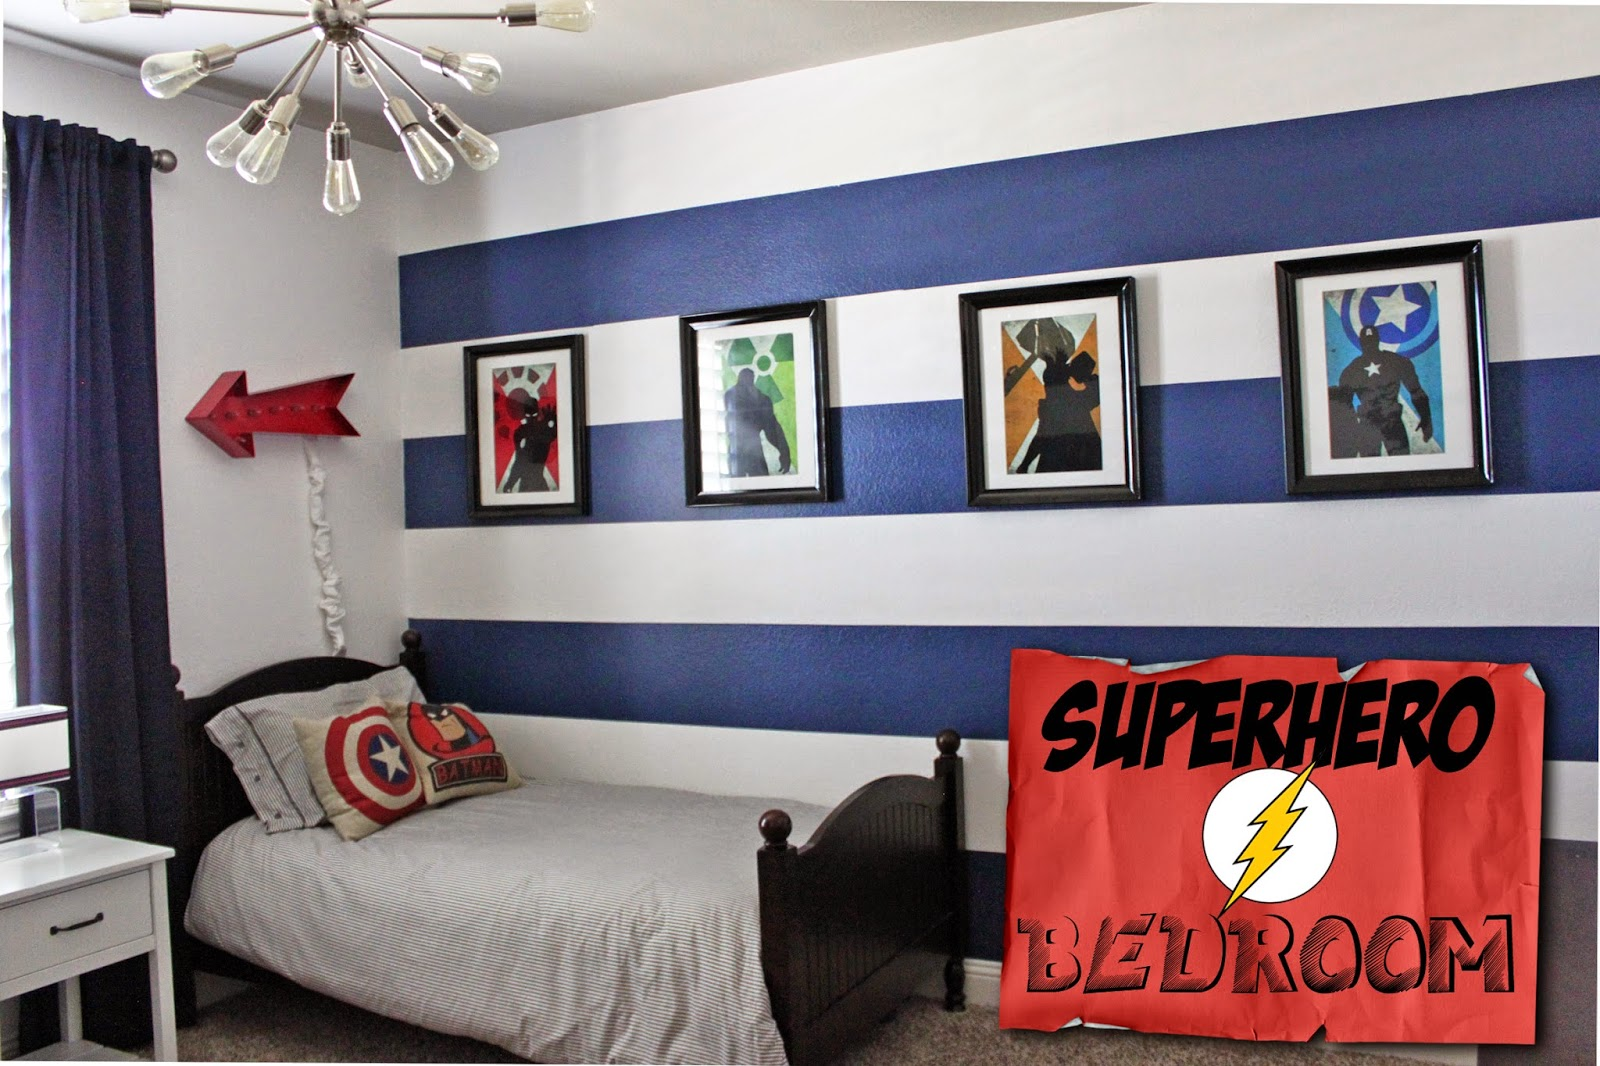 Superhero bedroom -  Boys Superhero Room Tour